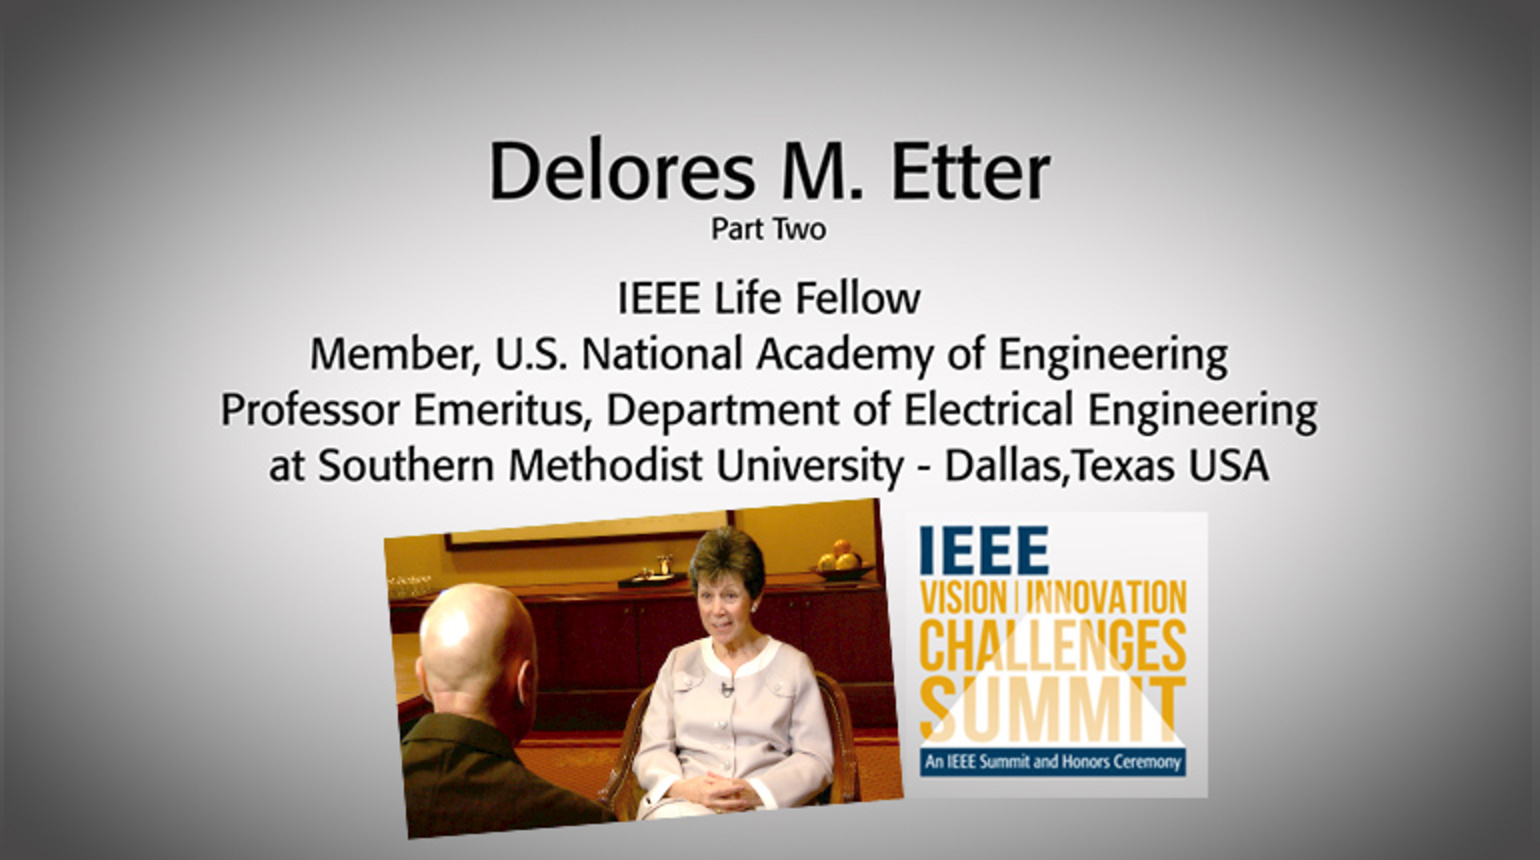 An Interview with Delores Etter, Part Two: IEEE VIC Summit 2018